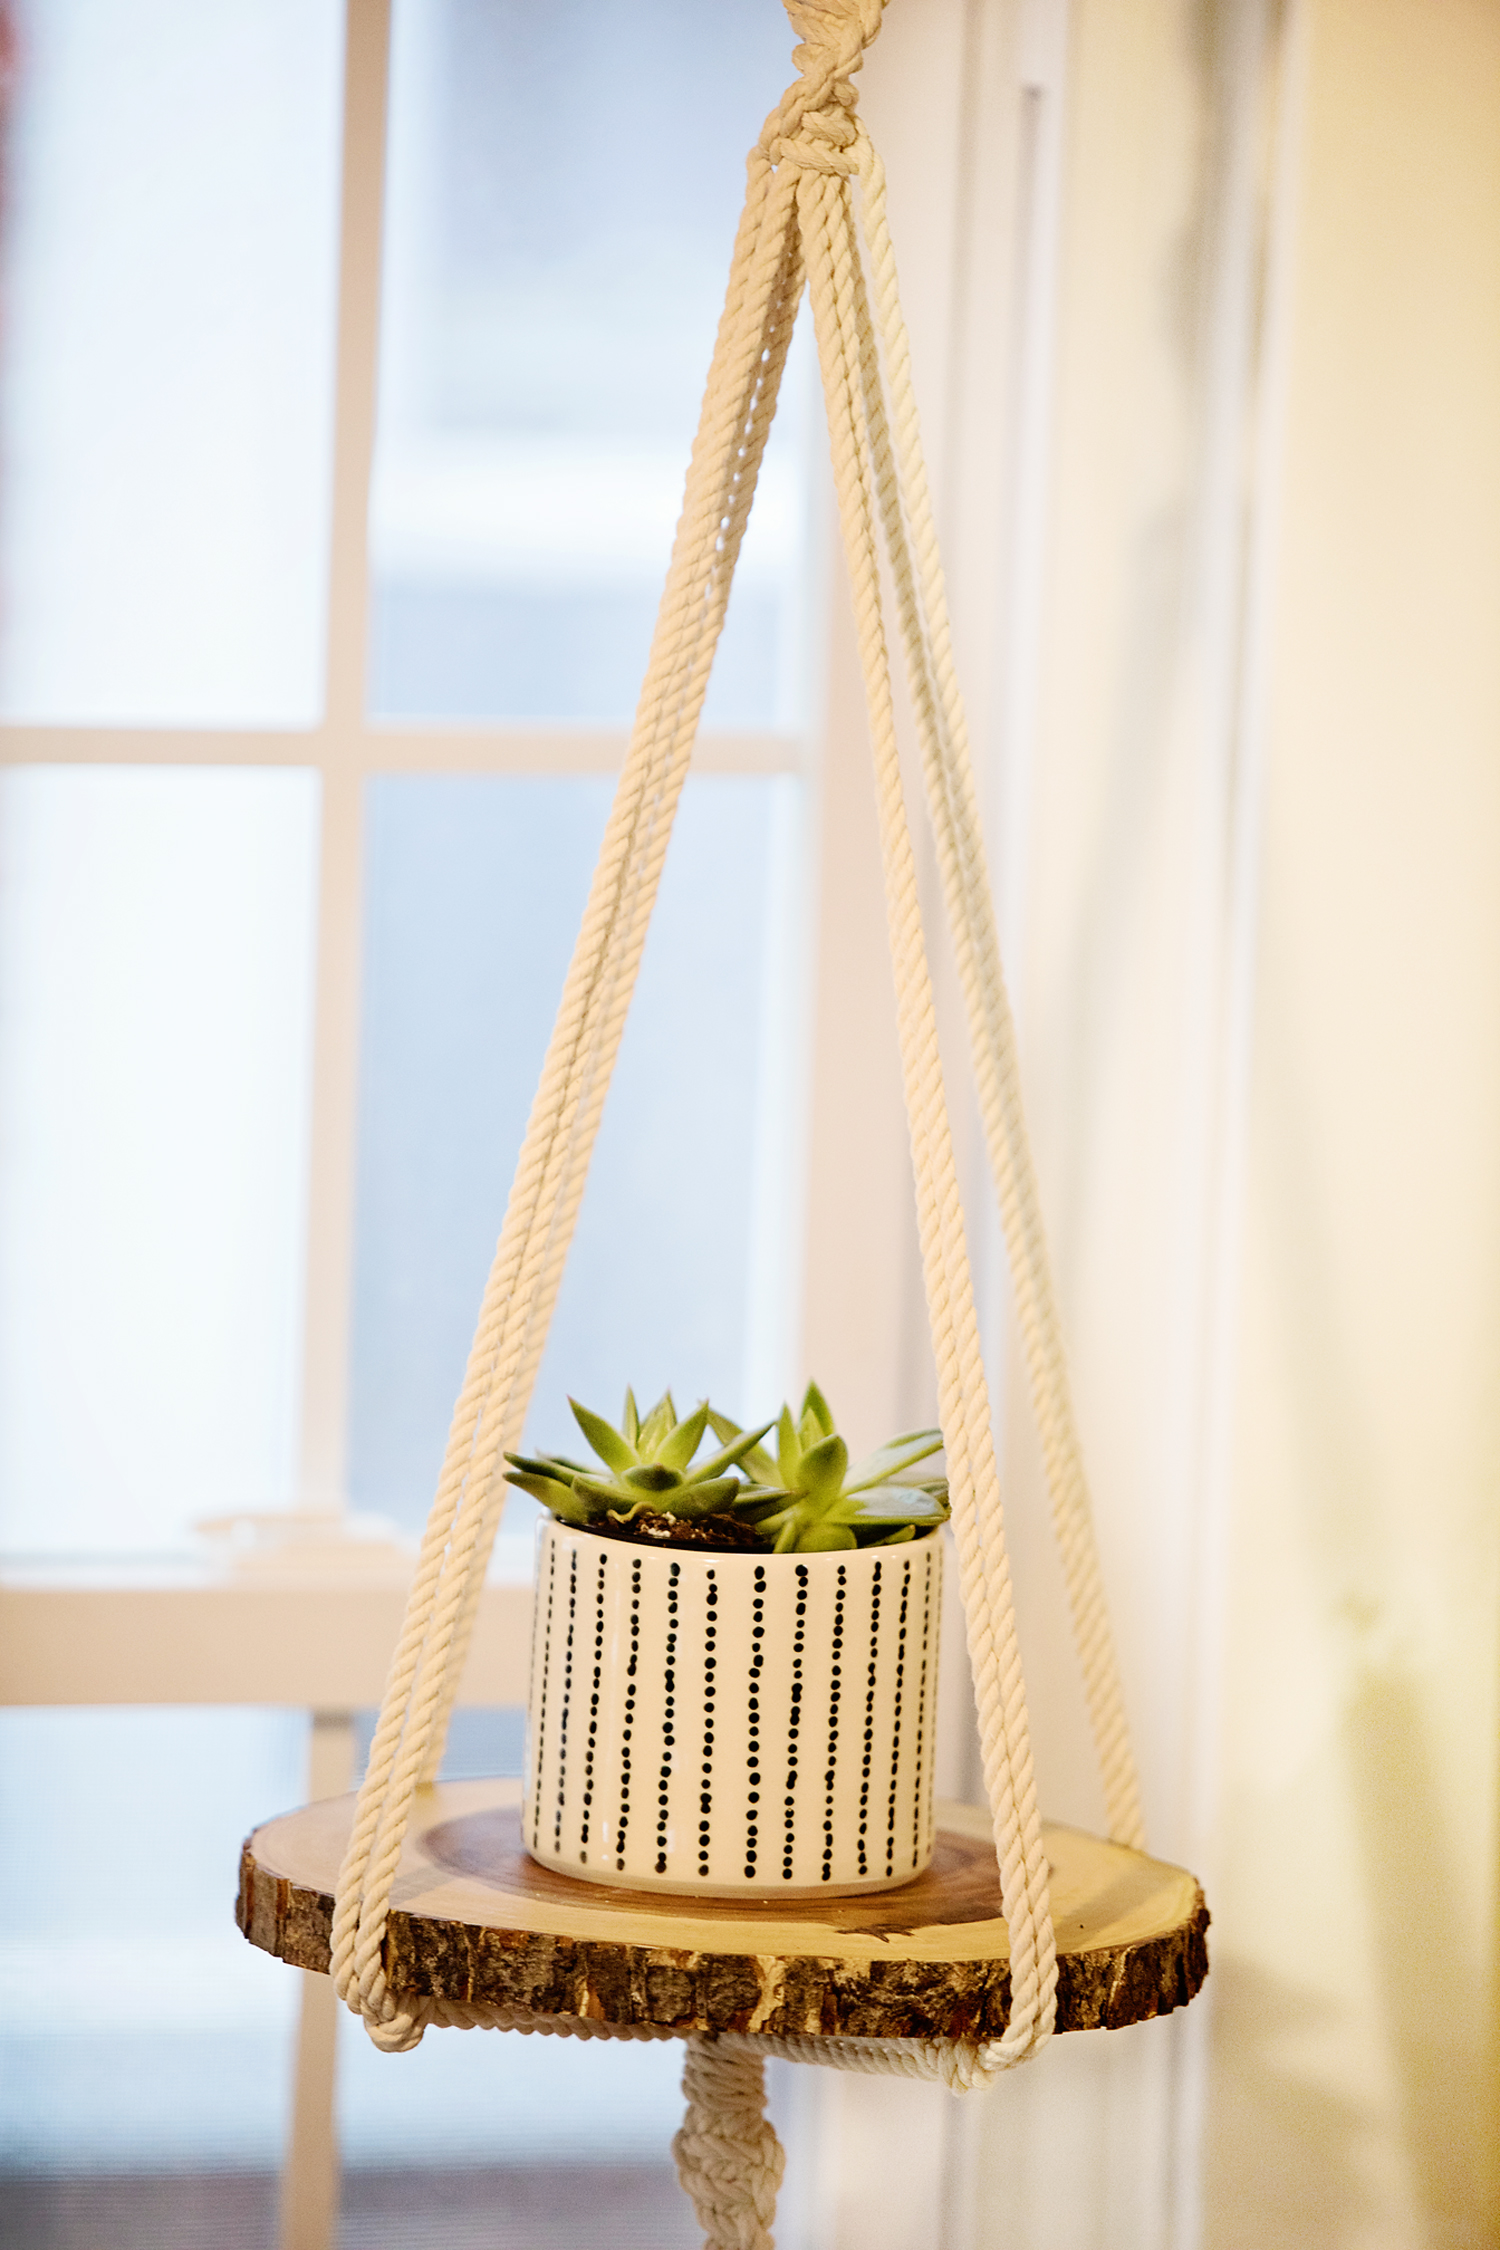 The Motherchic hanging planter from etsy